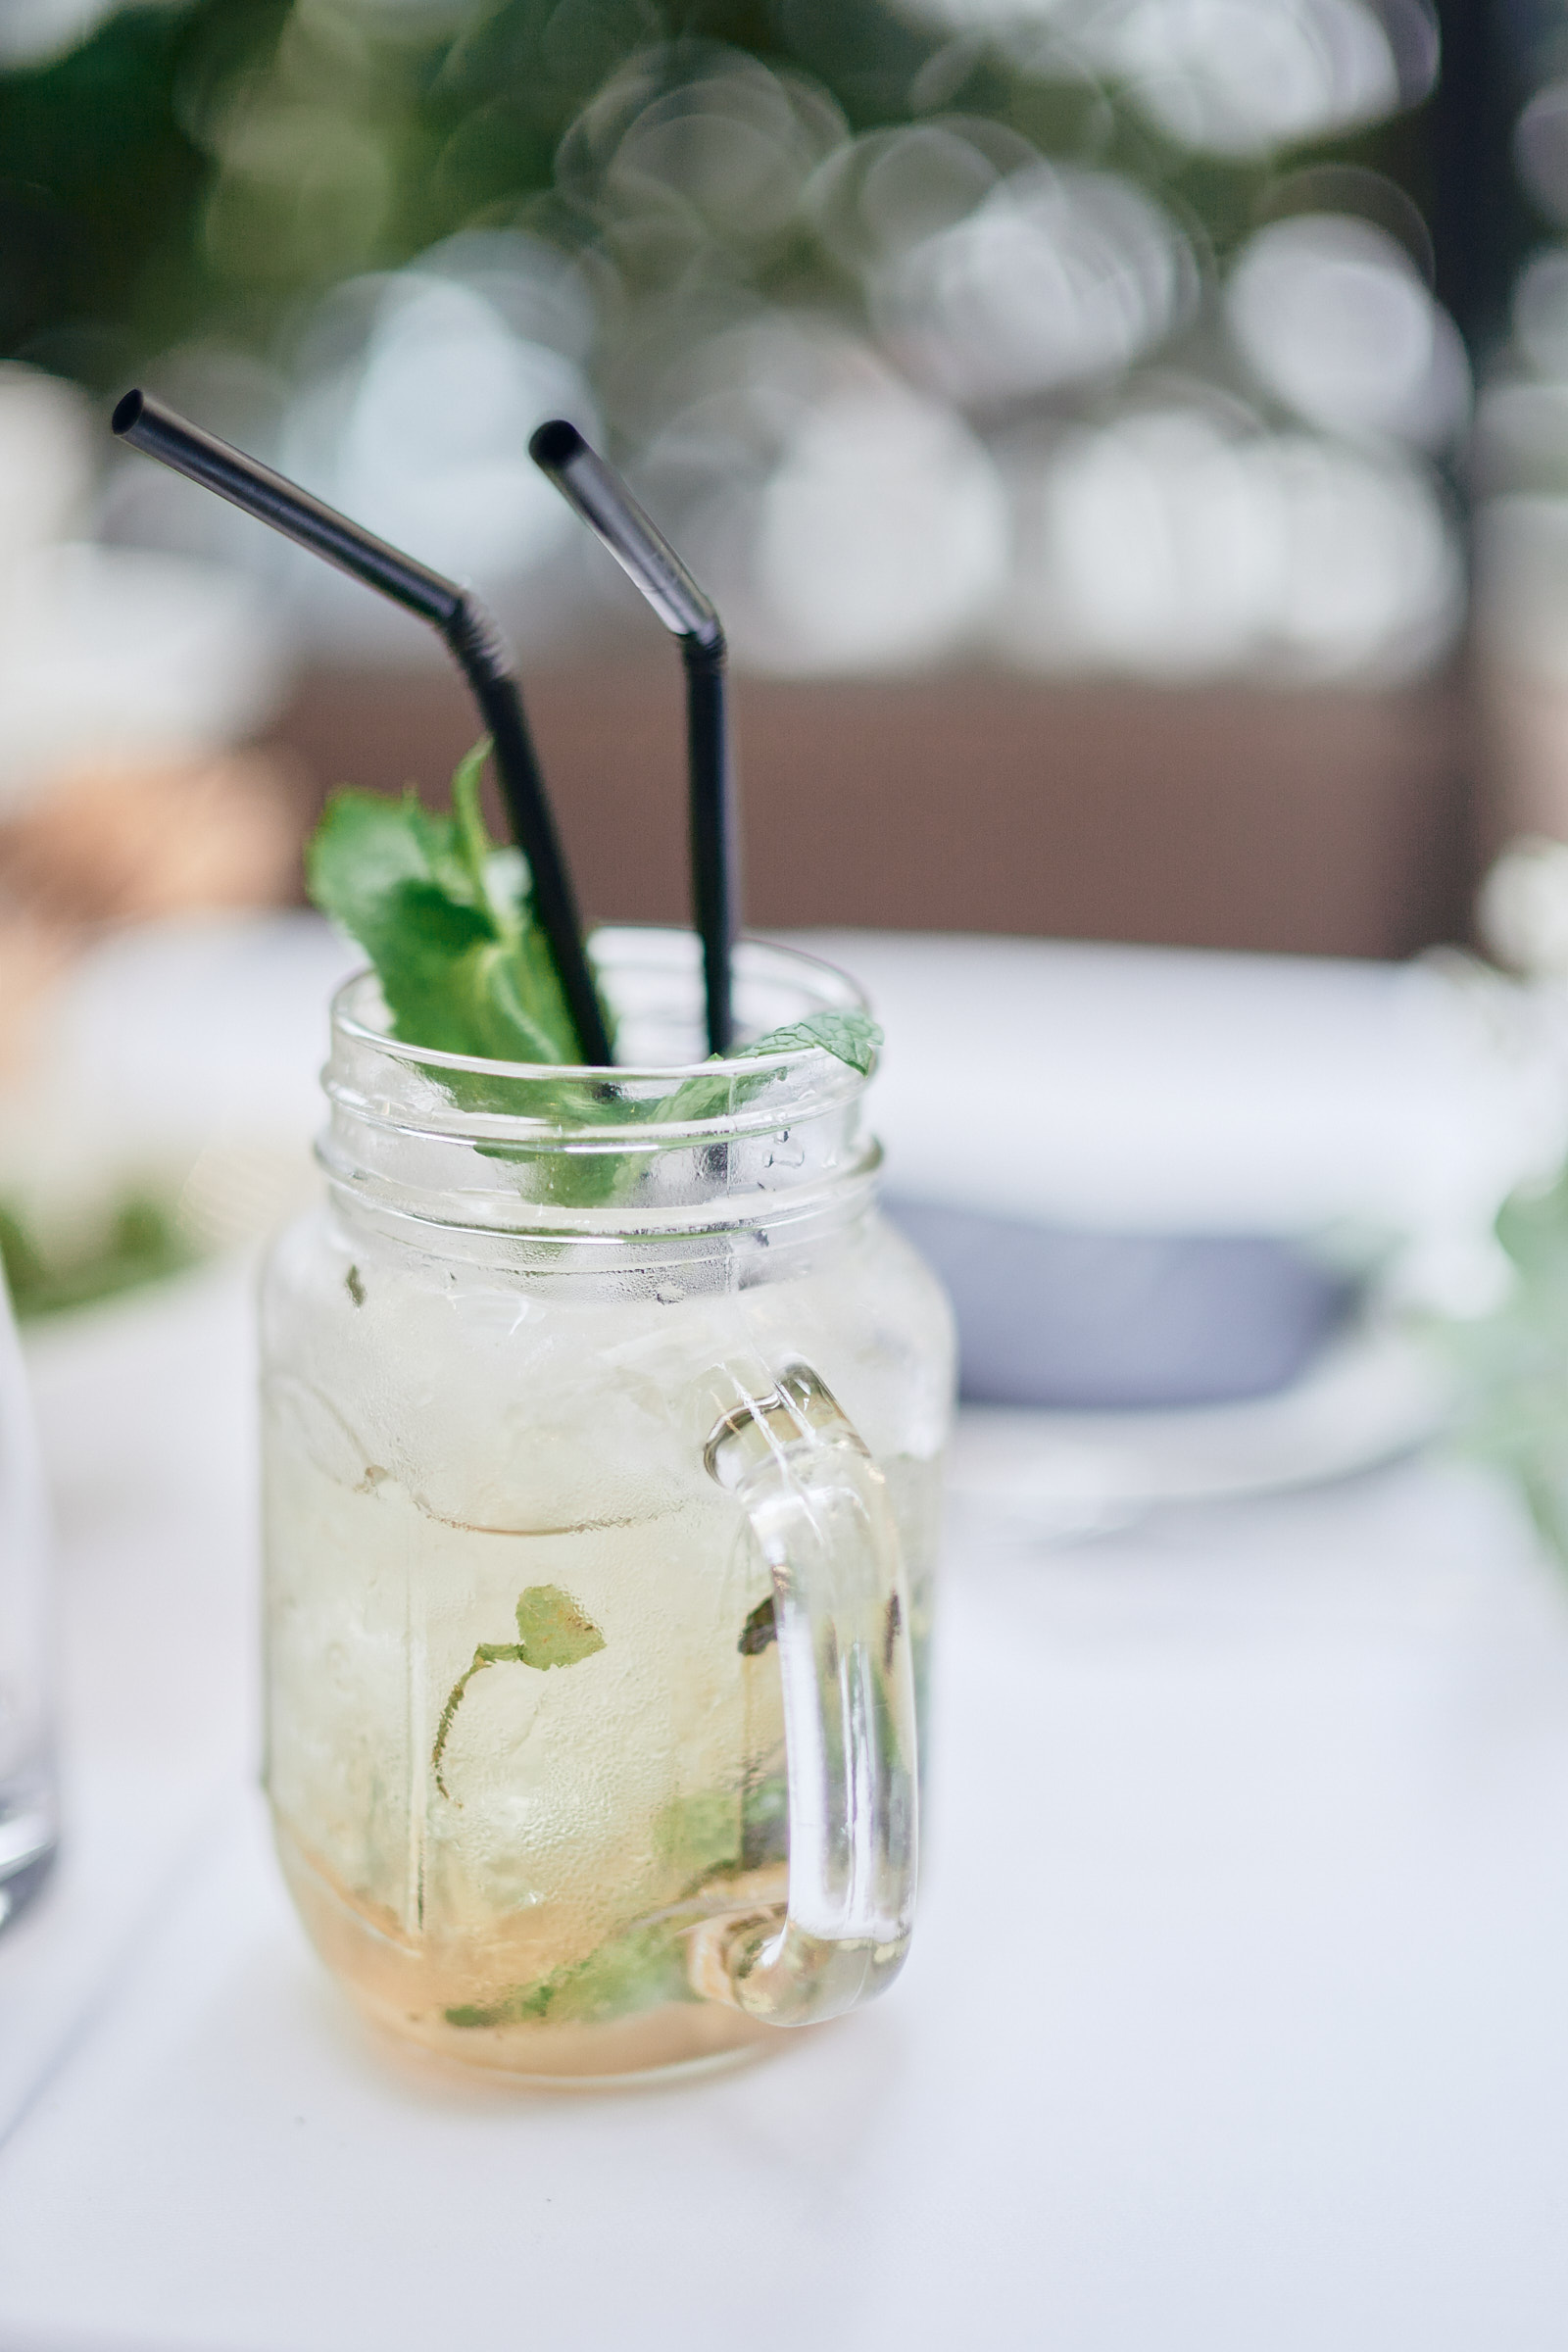 le mojito selon la table de balthazar à rennes